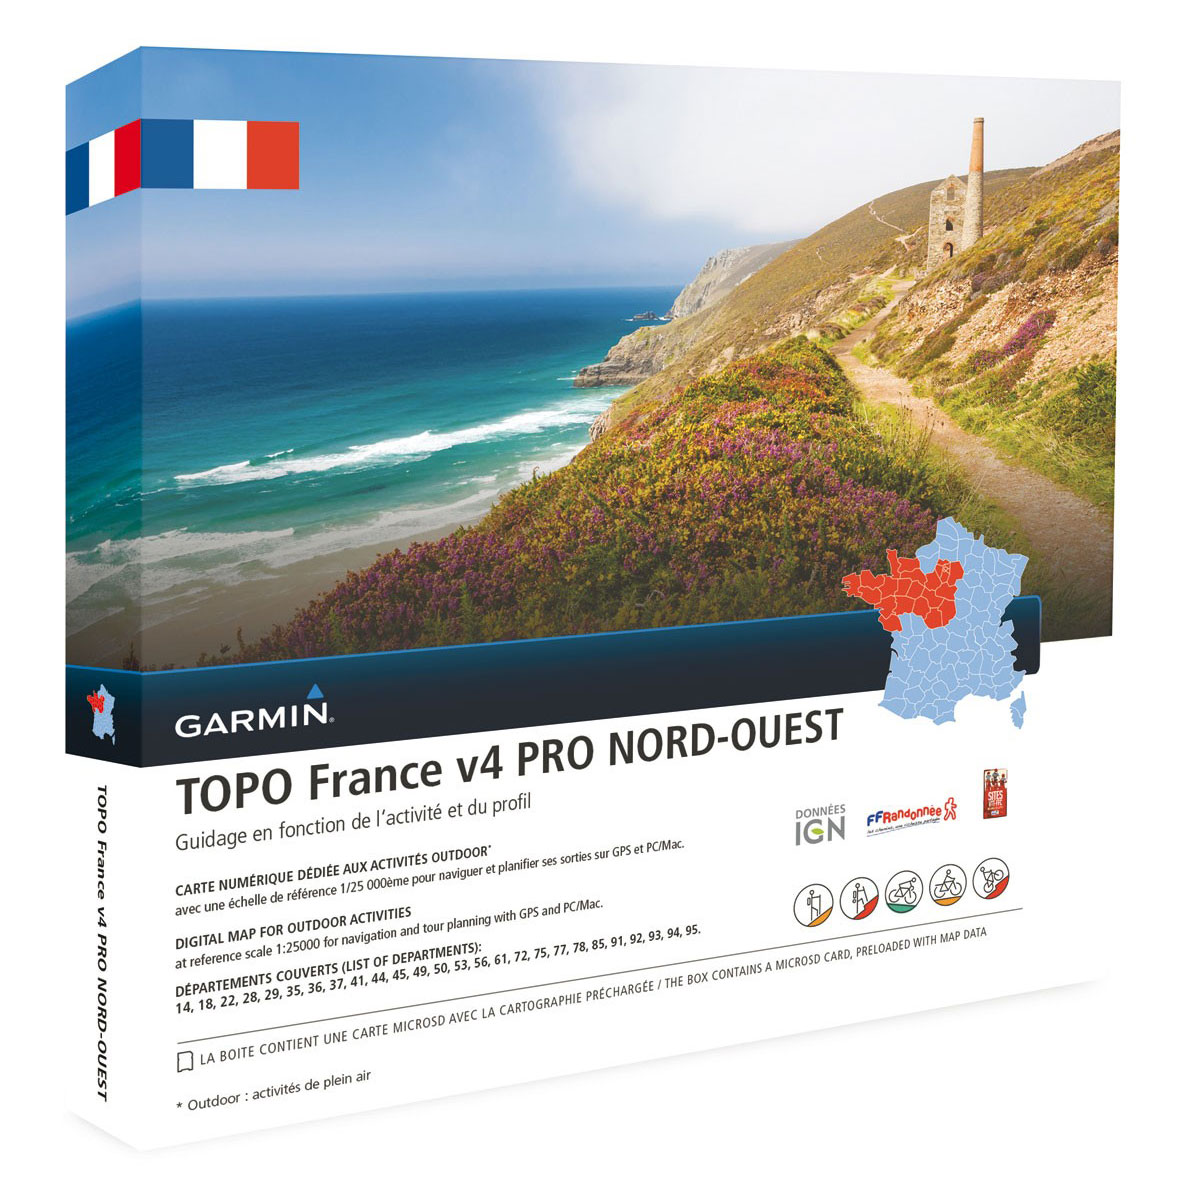 garmin topo france v4 pro nord ouest accessoires gps. Black Bedroom Furniture Sets. Home Design Ideas